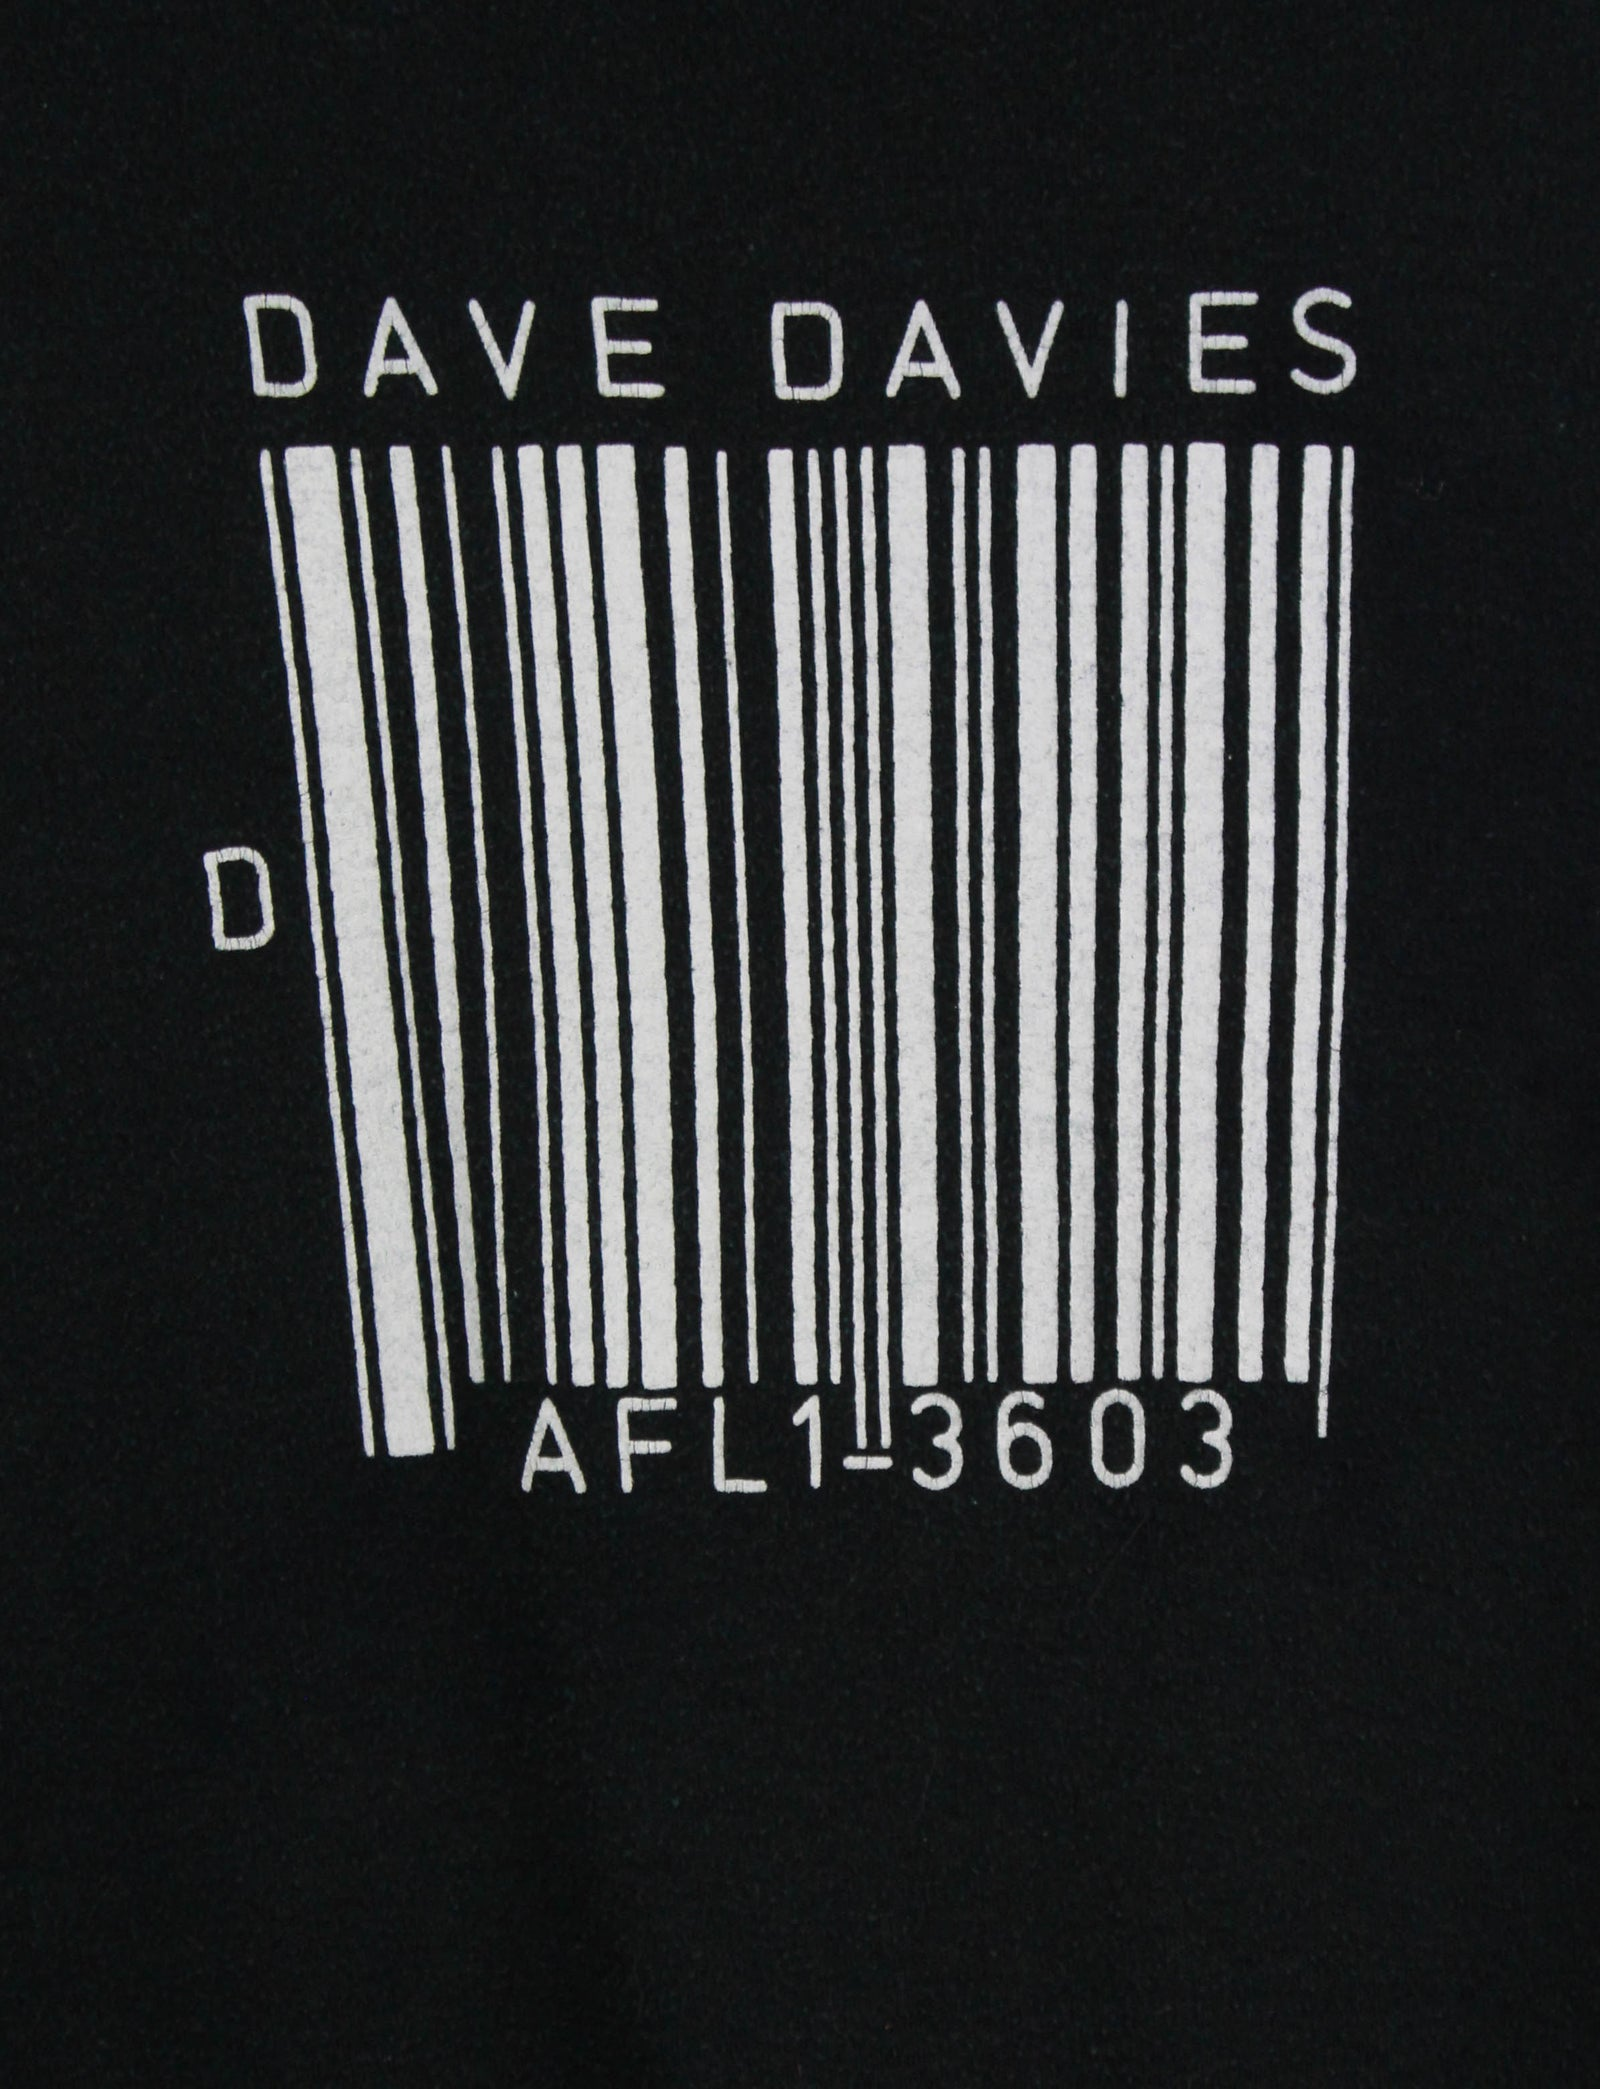 Vintage 1980 Dave Davies Concert T Shirt Promo Tee AFL 13603 Album The Kinks Black Unisex Small/Medium